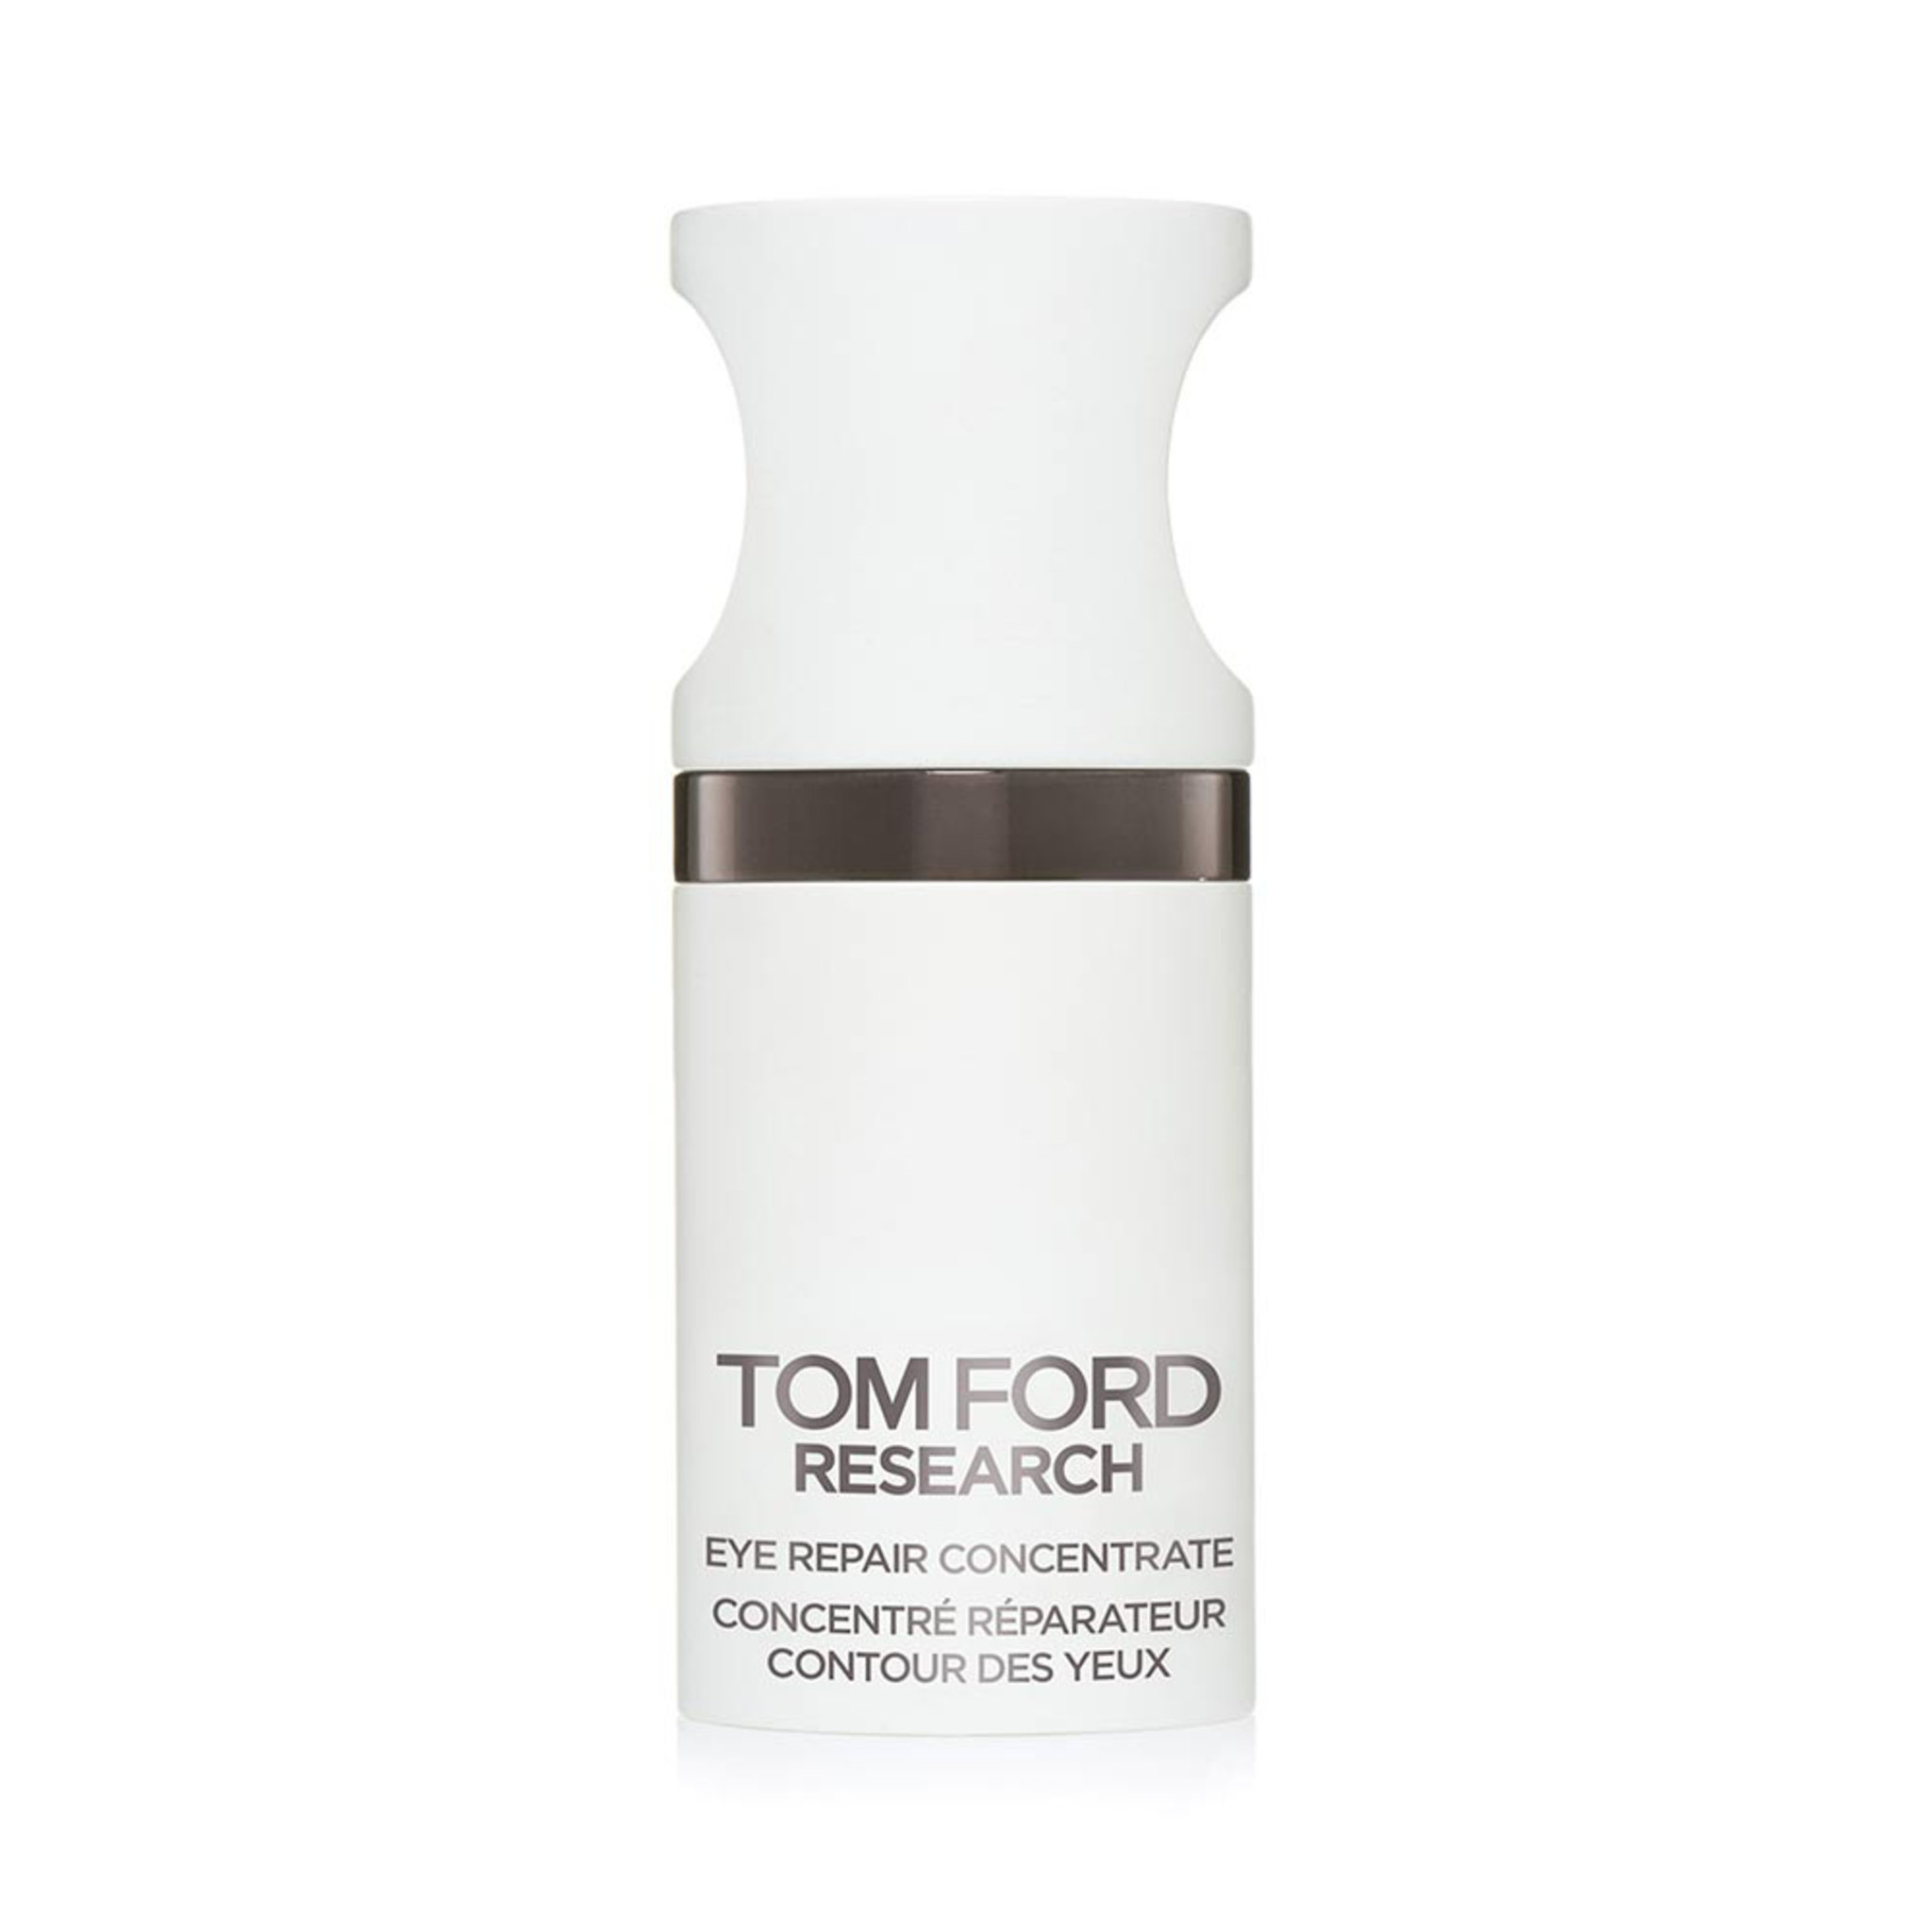 Tom Ford Research Eye Repair Concentrate, 15 ML